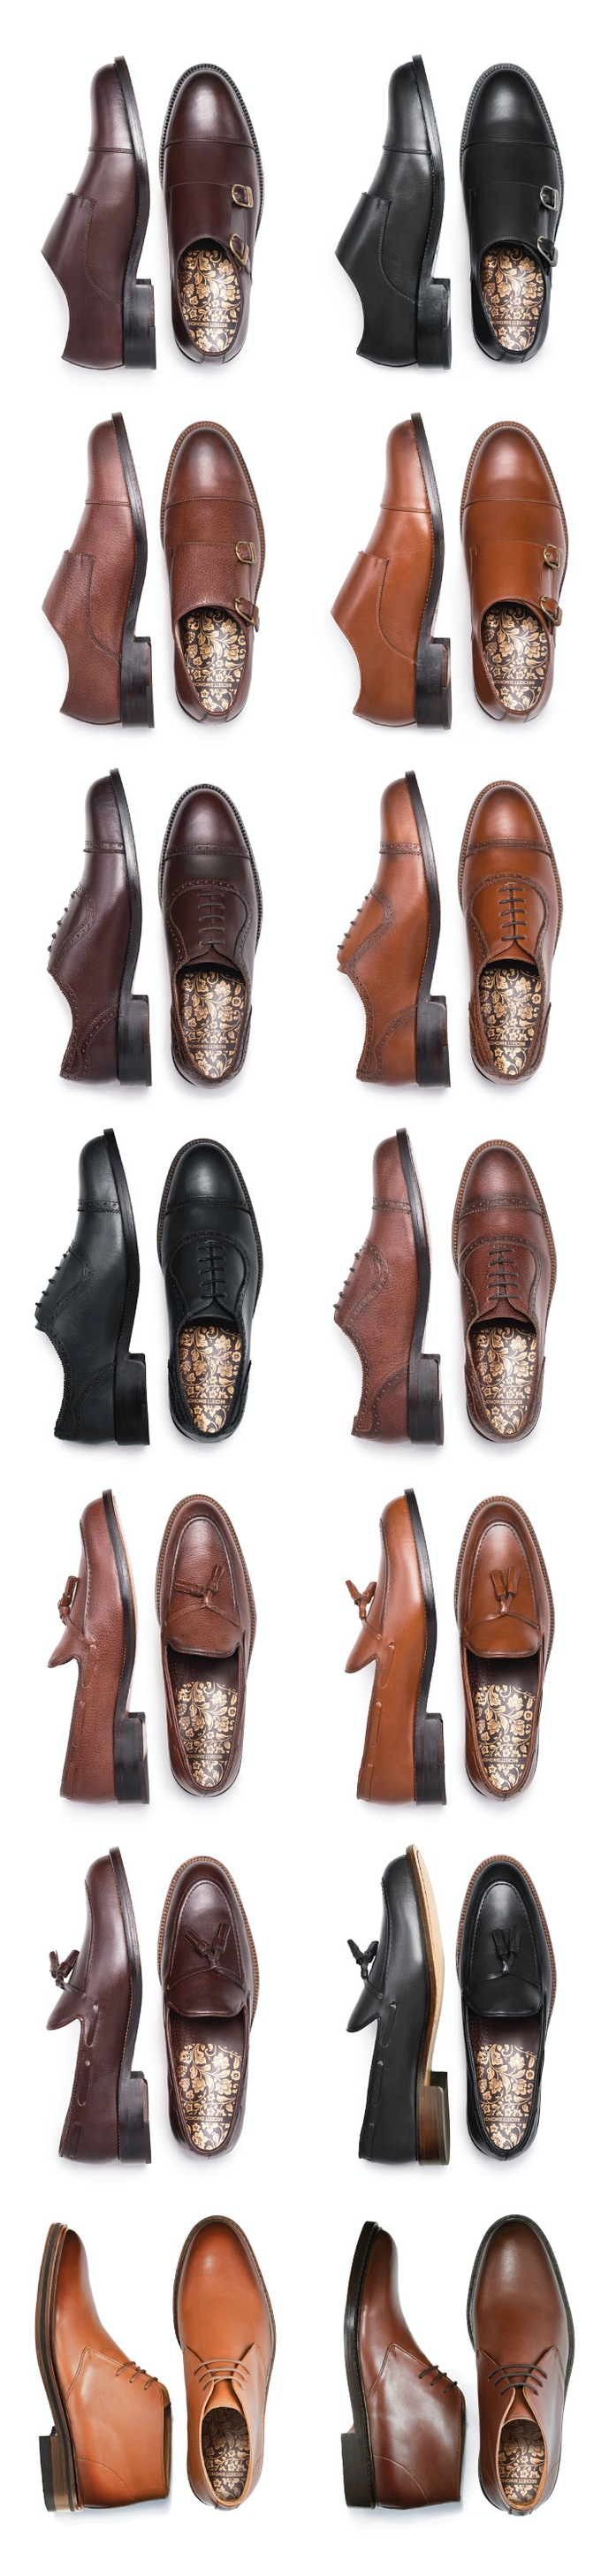 Luxury Sneakers And Premium Shoes At An Affordable Price By Beckett D Island Cut Engineer Safety Boots Dark Brown All Of Our Are A Decidedly Sleek Take On The Timeless Classics Flawlessly Constructed Master Shoemakers Fine Will Be Best